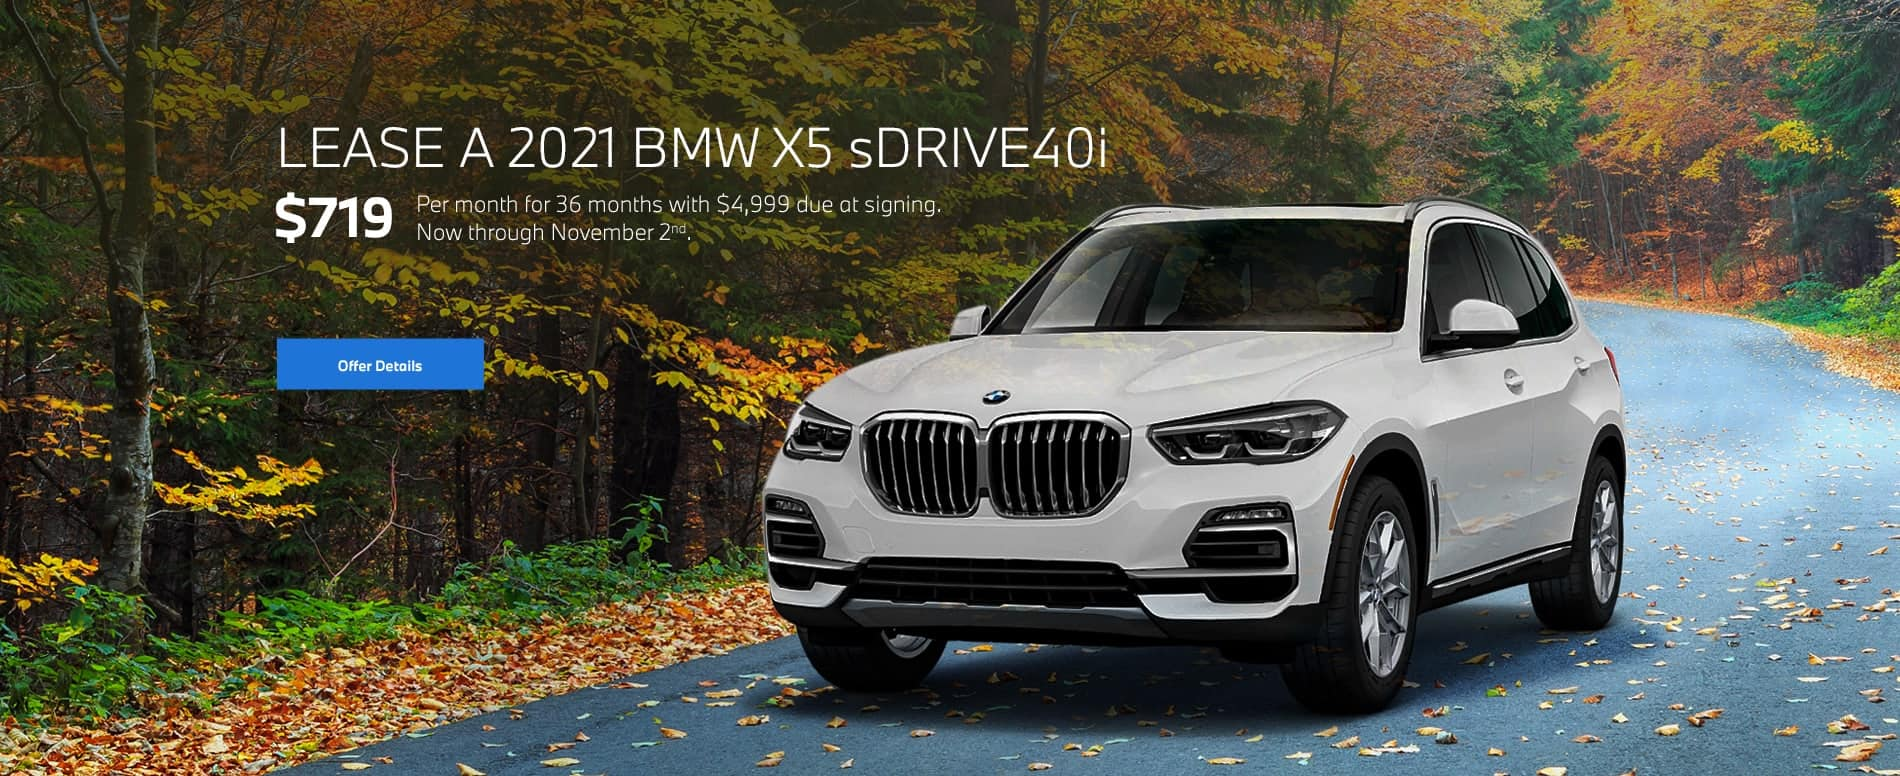 2021 BMW X5 sDrive40i Lease